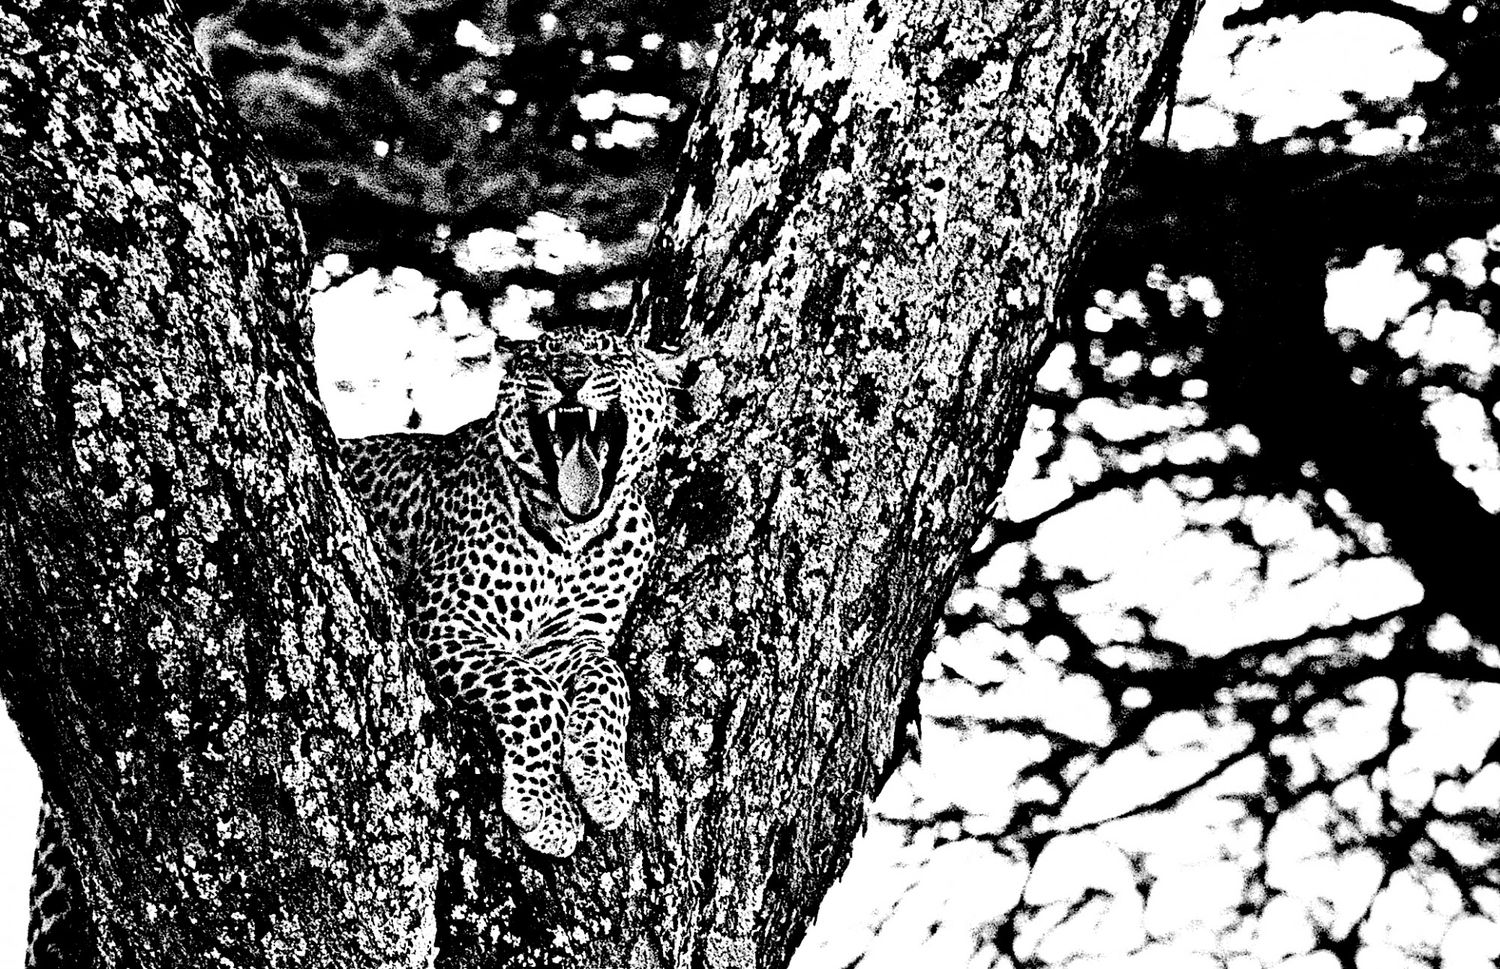 Leopard - 7, Serengeti 2016   Edition 2 of 2